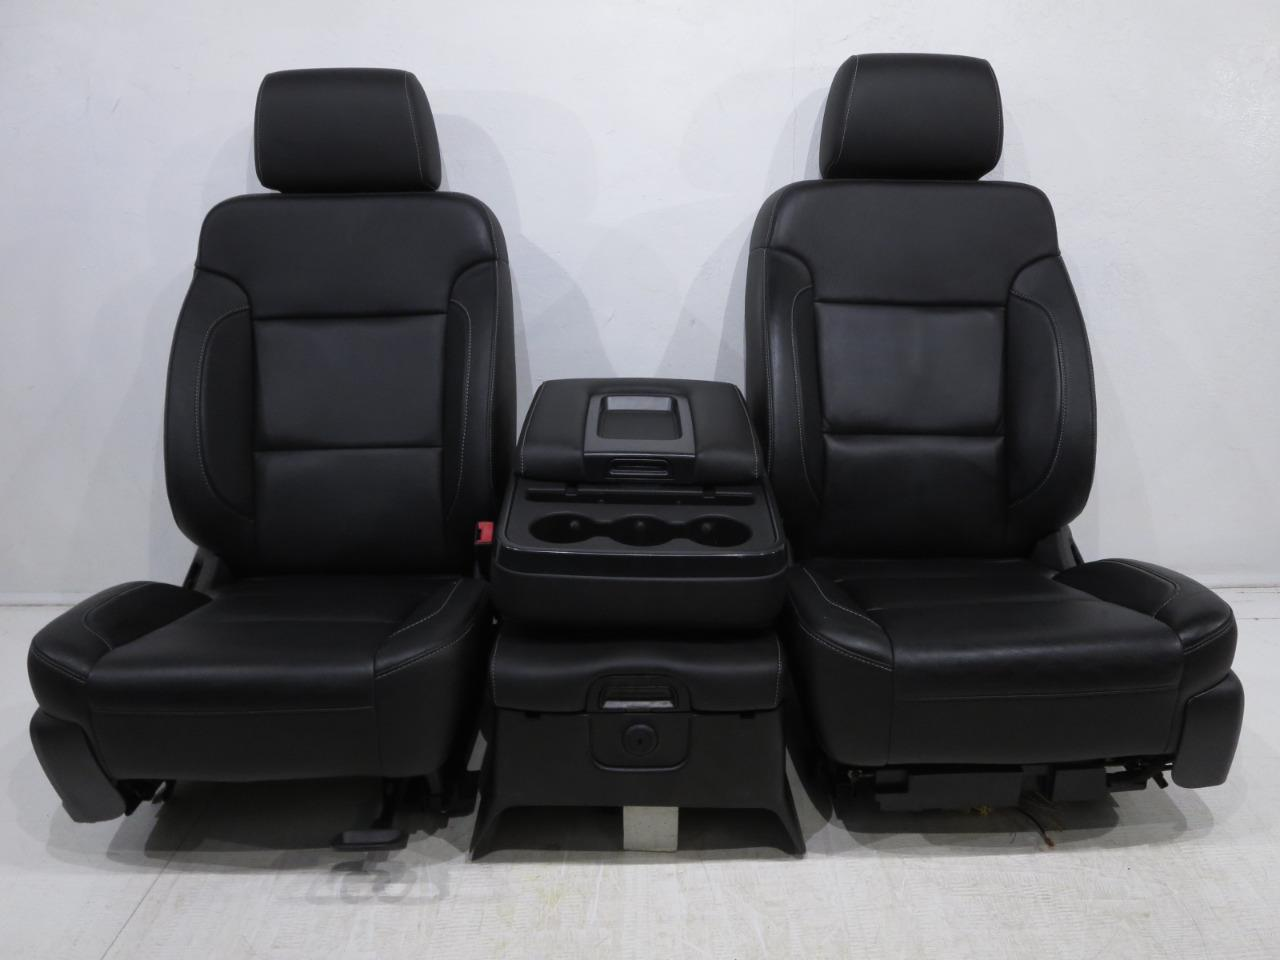 Chevy Silverado Replacement Seats >> Replacement Chevy Silverado Gmc Sierra Oem Leather Seats 2014 2015 2016 2017 2018 ' | Stock # 1062i